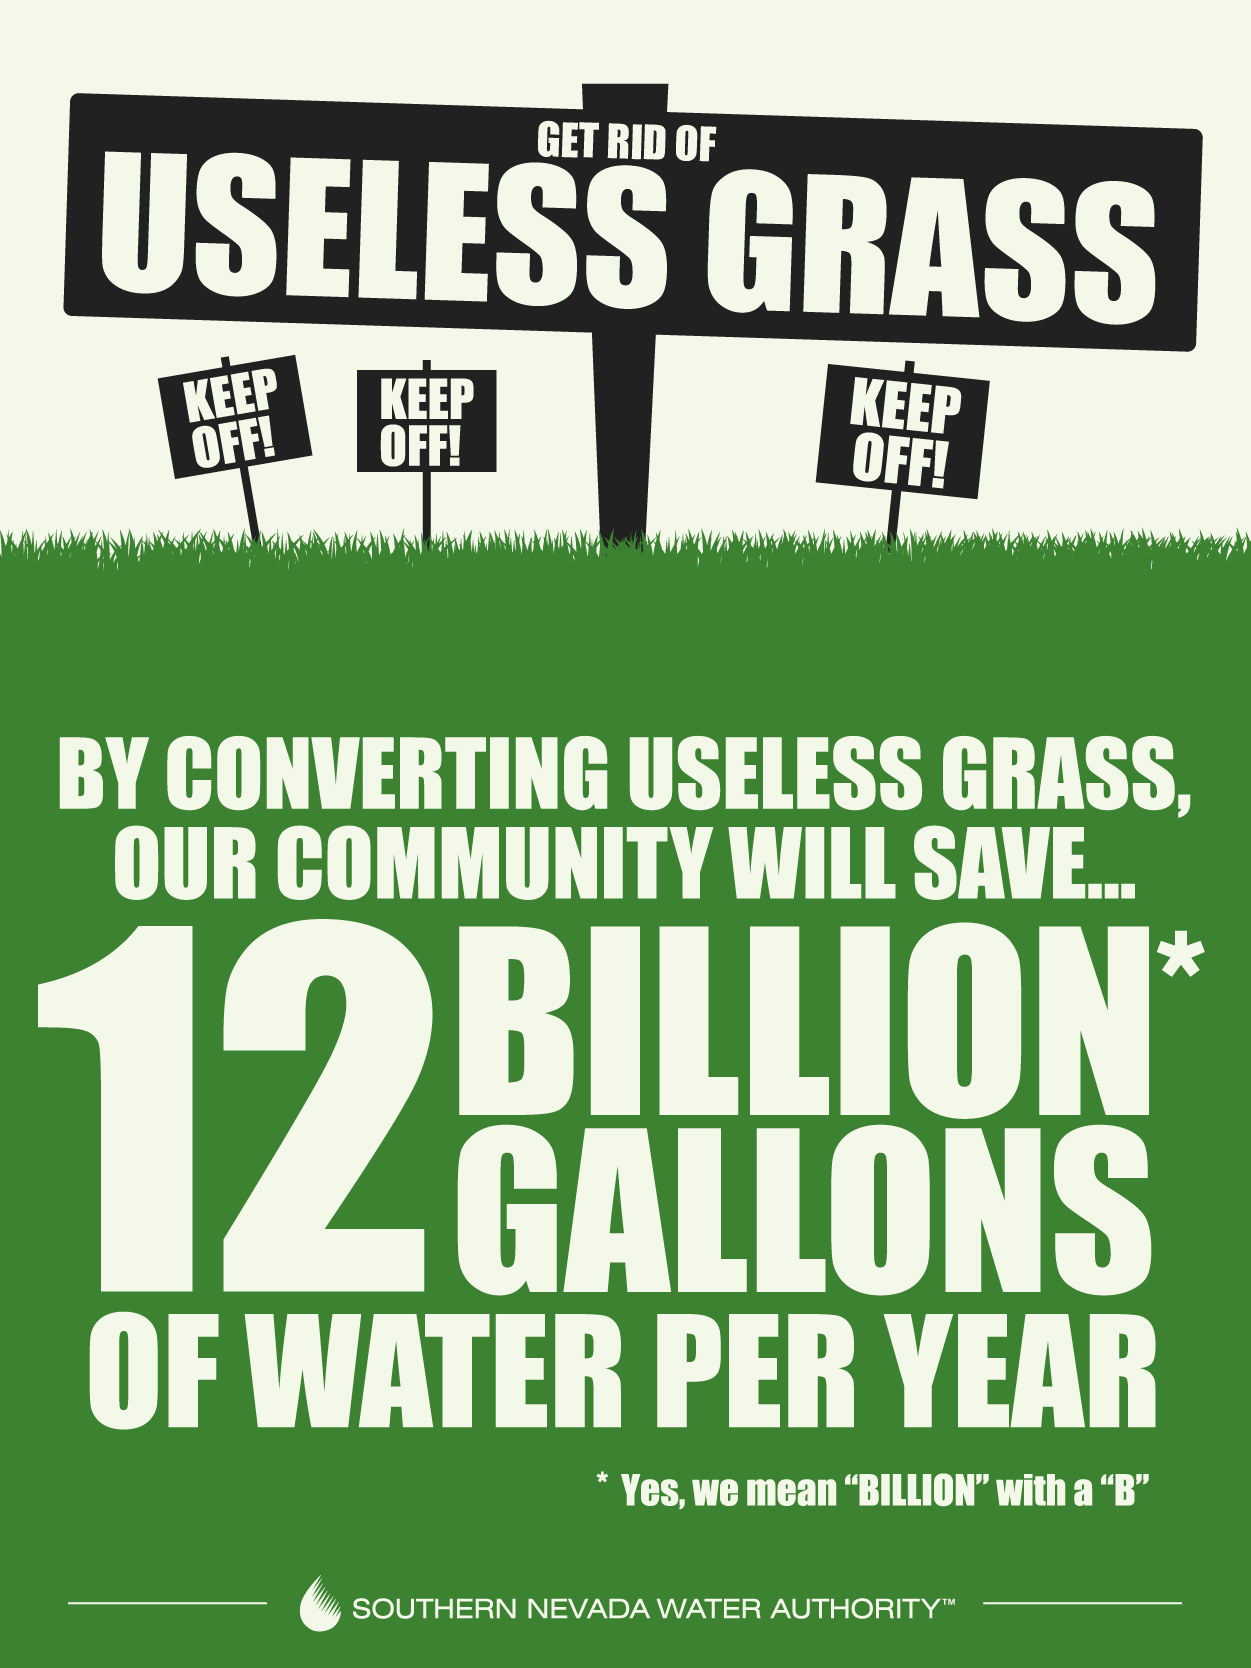 An infographic depicting the amount of water that would be saved if useless grass was converted to desert landscaping